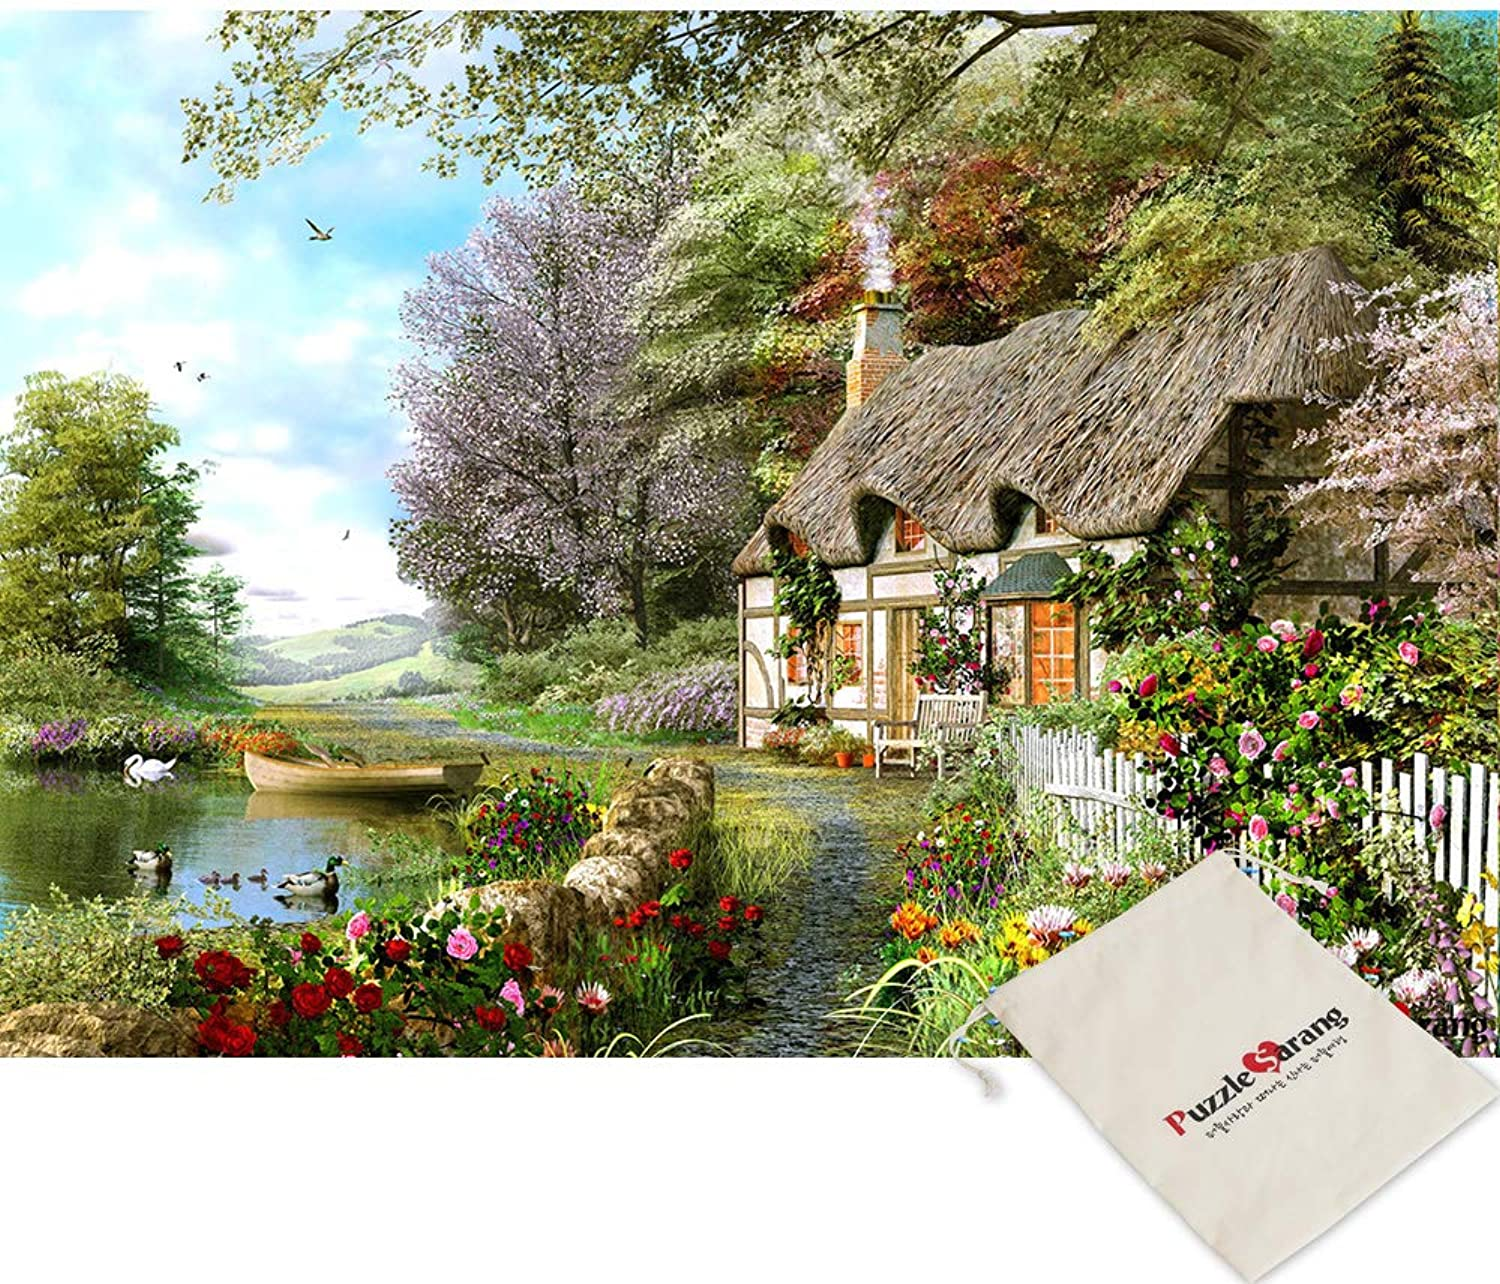 Chamberart A Small Hut in The Woods - 2000 Piece Jigsaw Puzzle [Pouch Included]